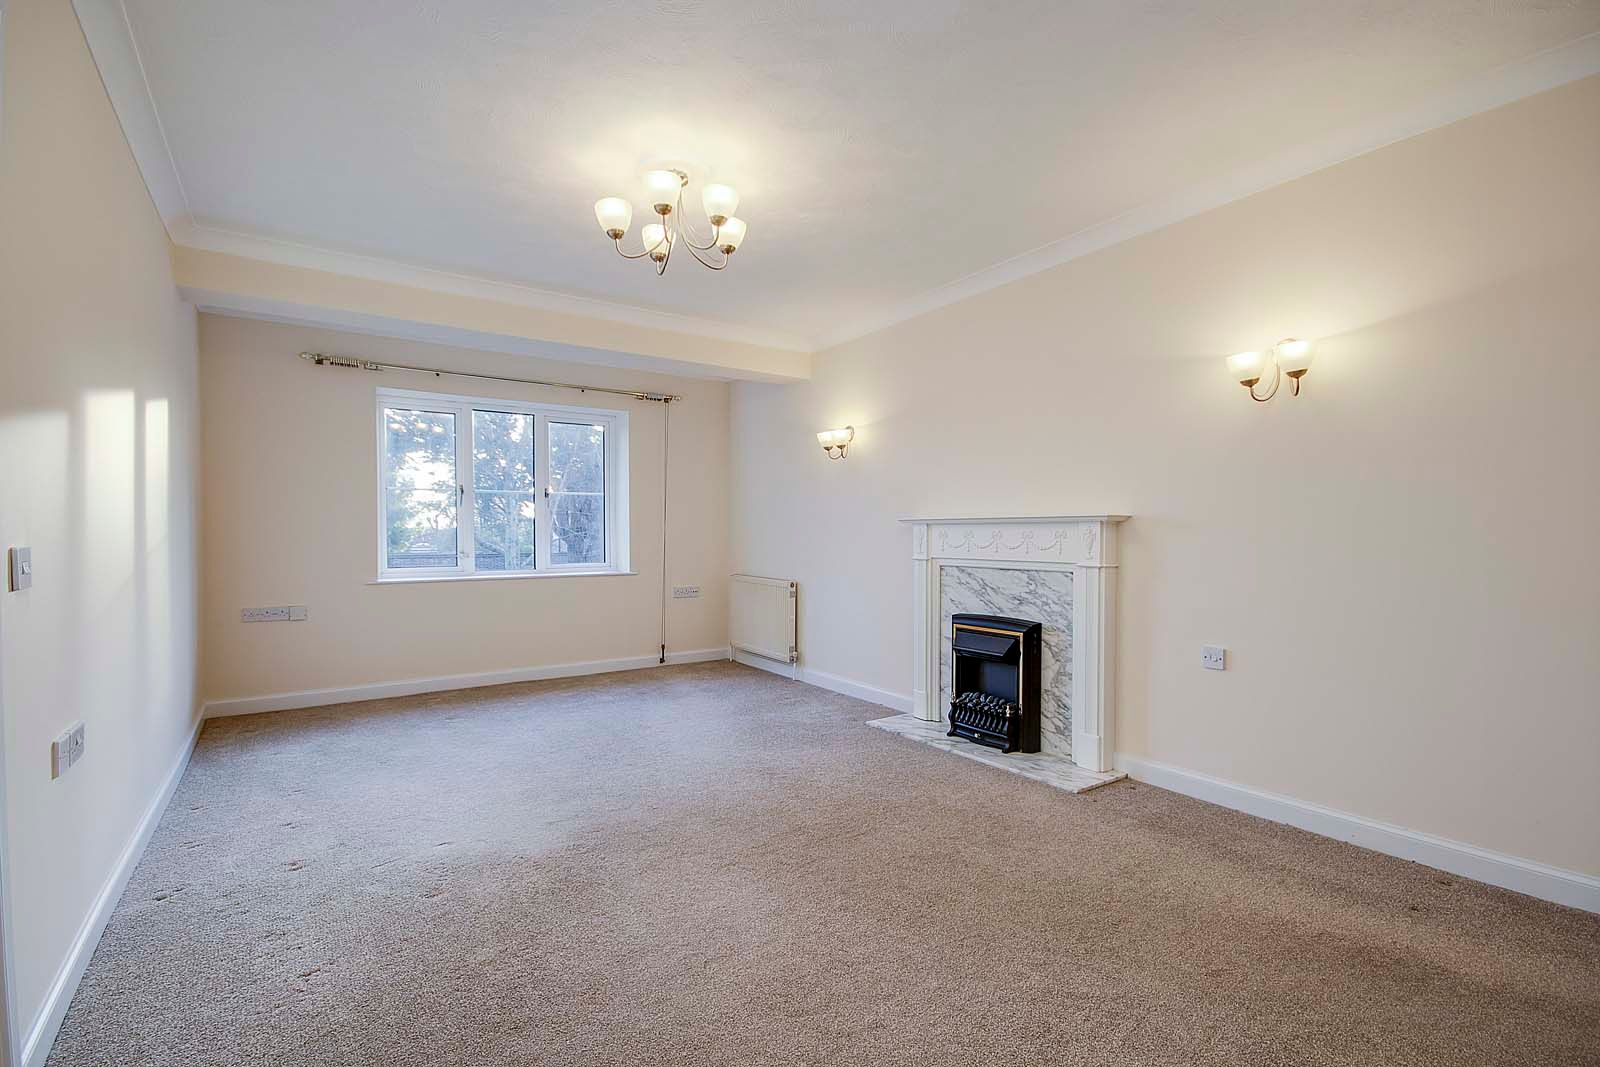 2 bed Apartment for sale in East Preston - Sitting room (Property Image 1)